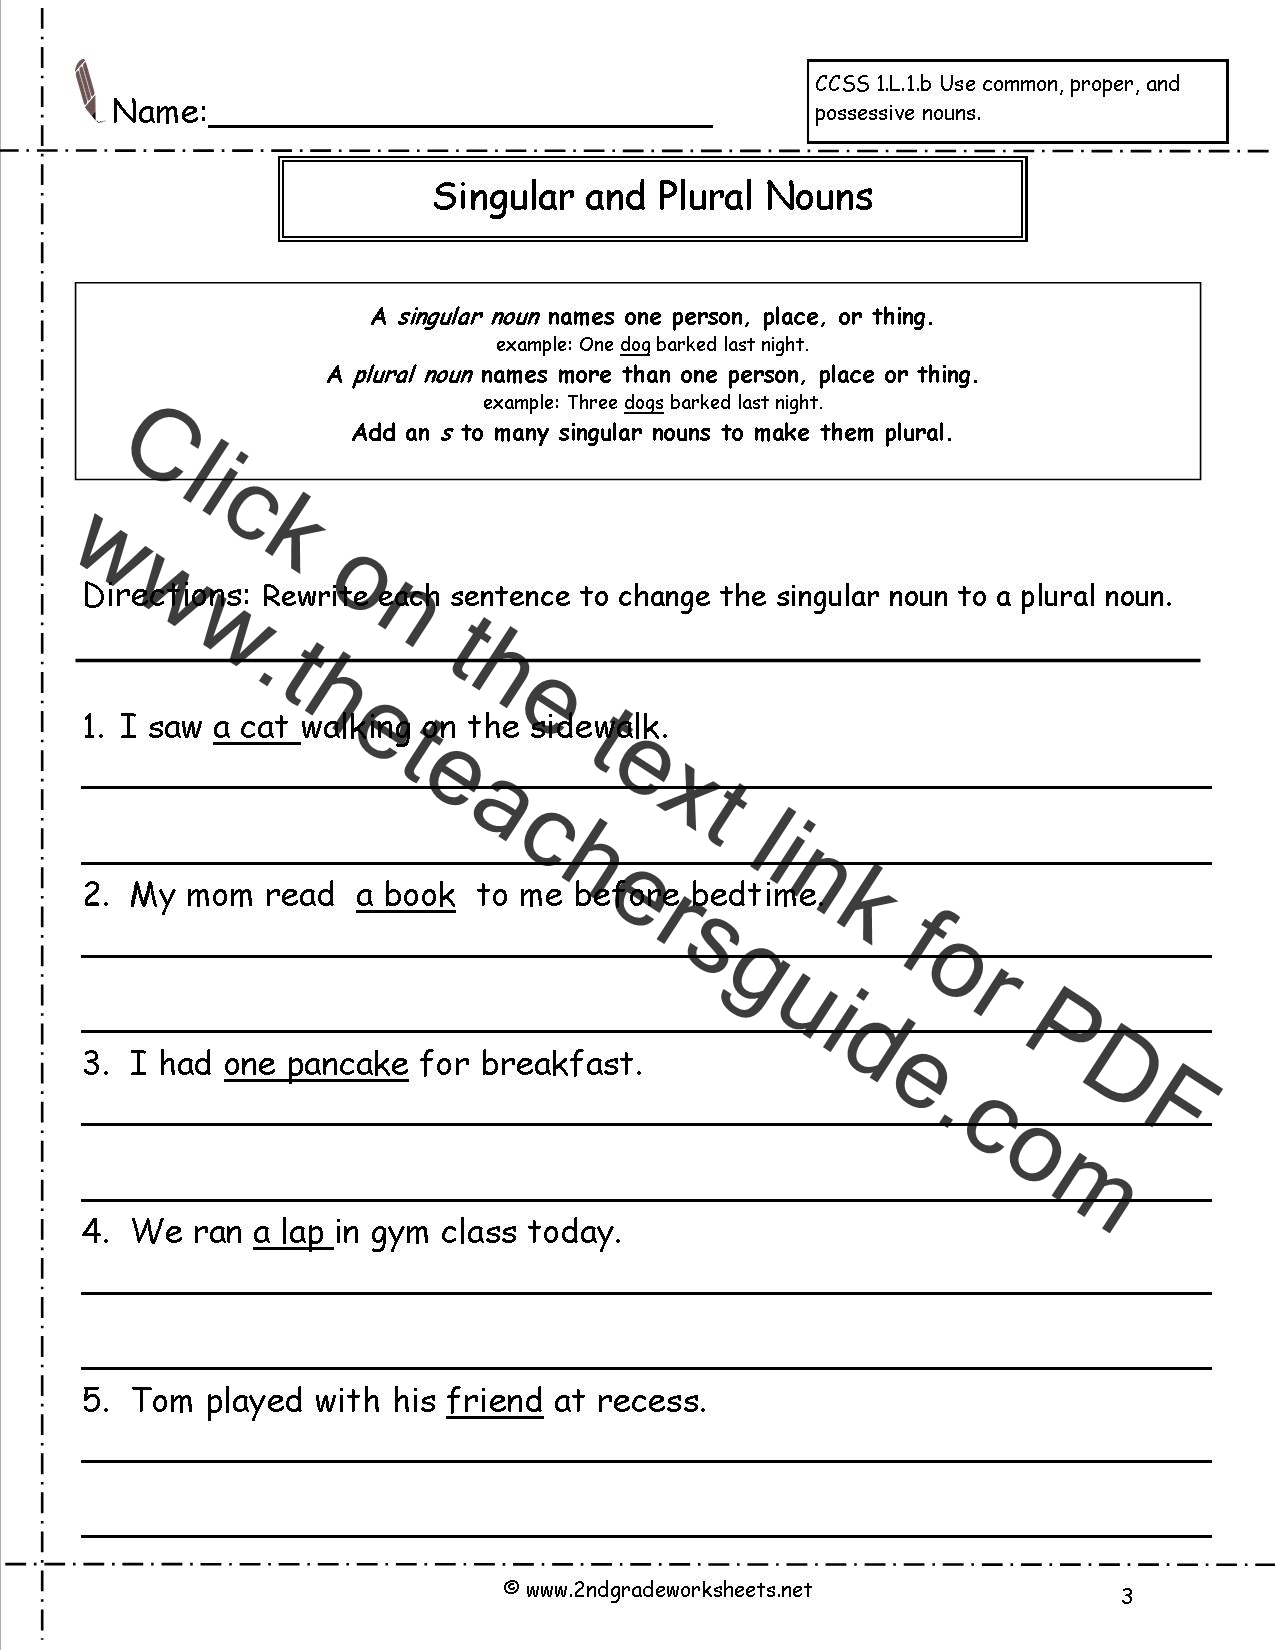 Singular and Plural Nouns Worksheets – Singular and Plural Nouns Worksheets